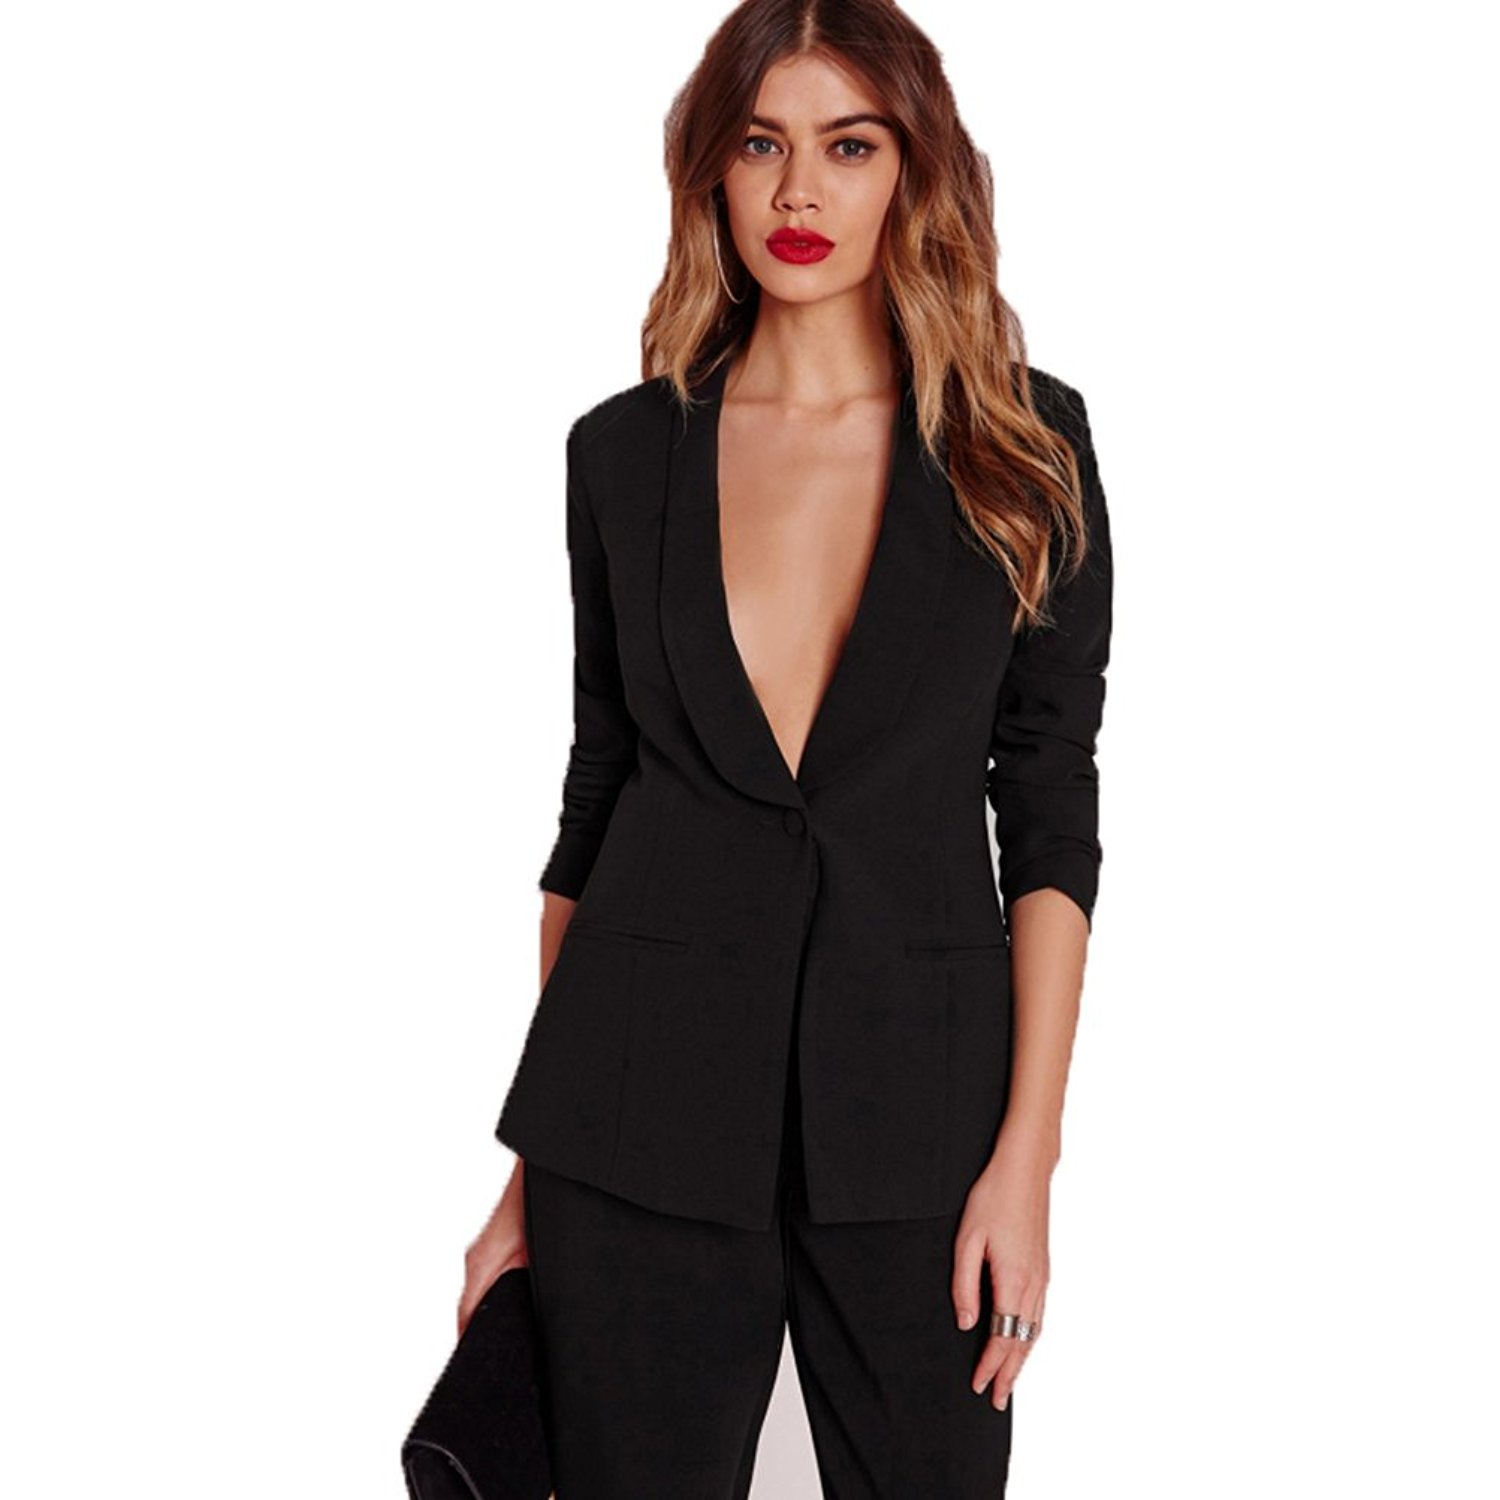 96eaf8addd Get Quotations · 2018 Black Blazer Suit Jacket Casual Slim Elegant Women  Suit Coat V Neck Sexy